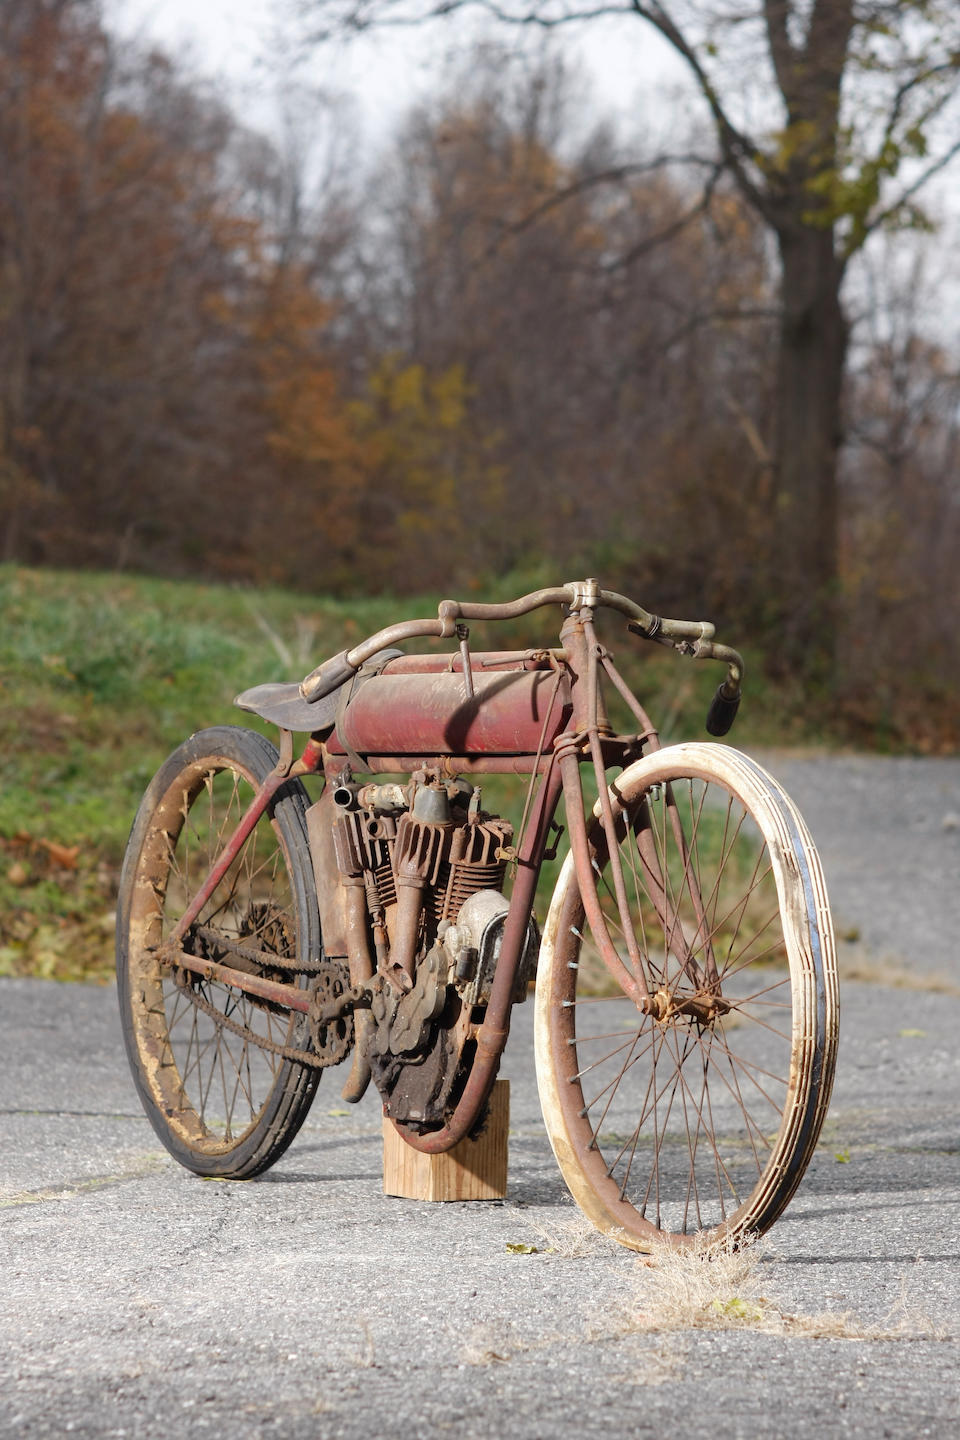 From the first year of 61ci Big Twin's production, in unrestored and original condition,1915 Indian 61ci Board-Track Racing Motorcycle Engine no. 74G762